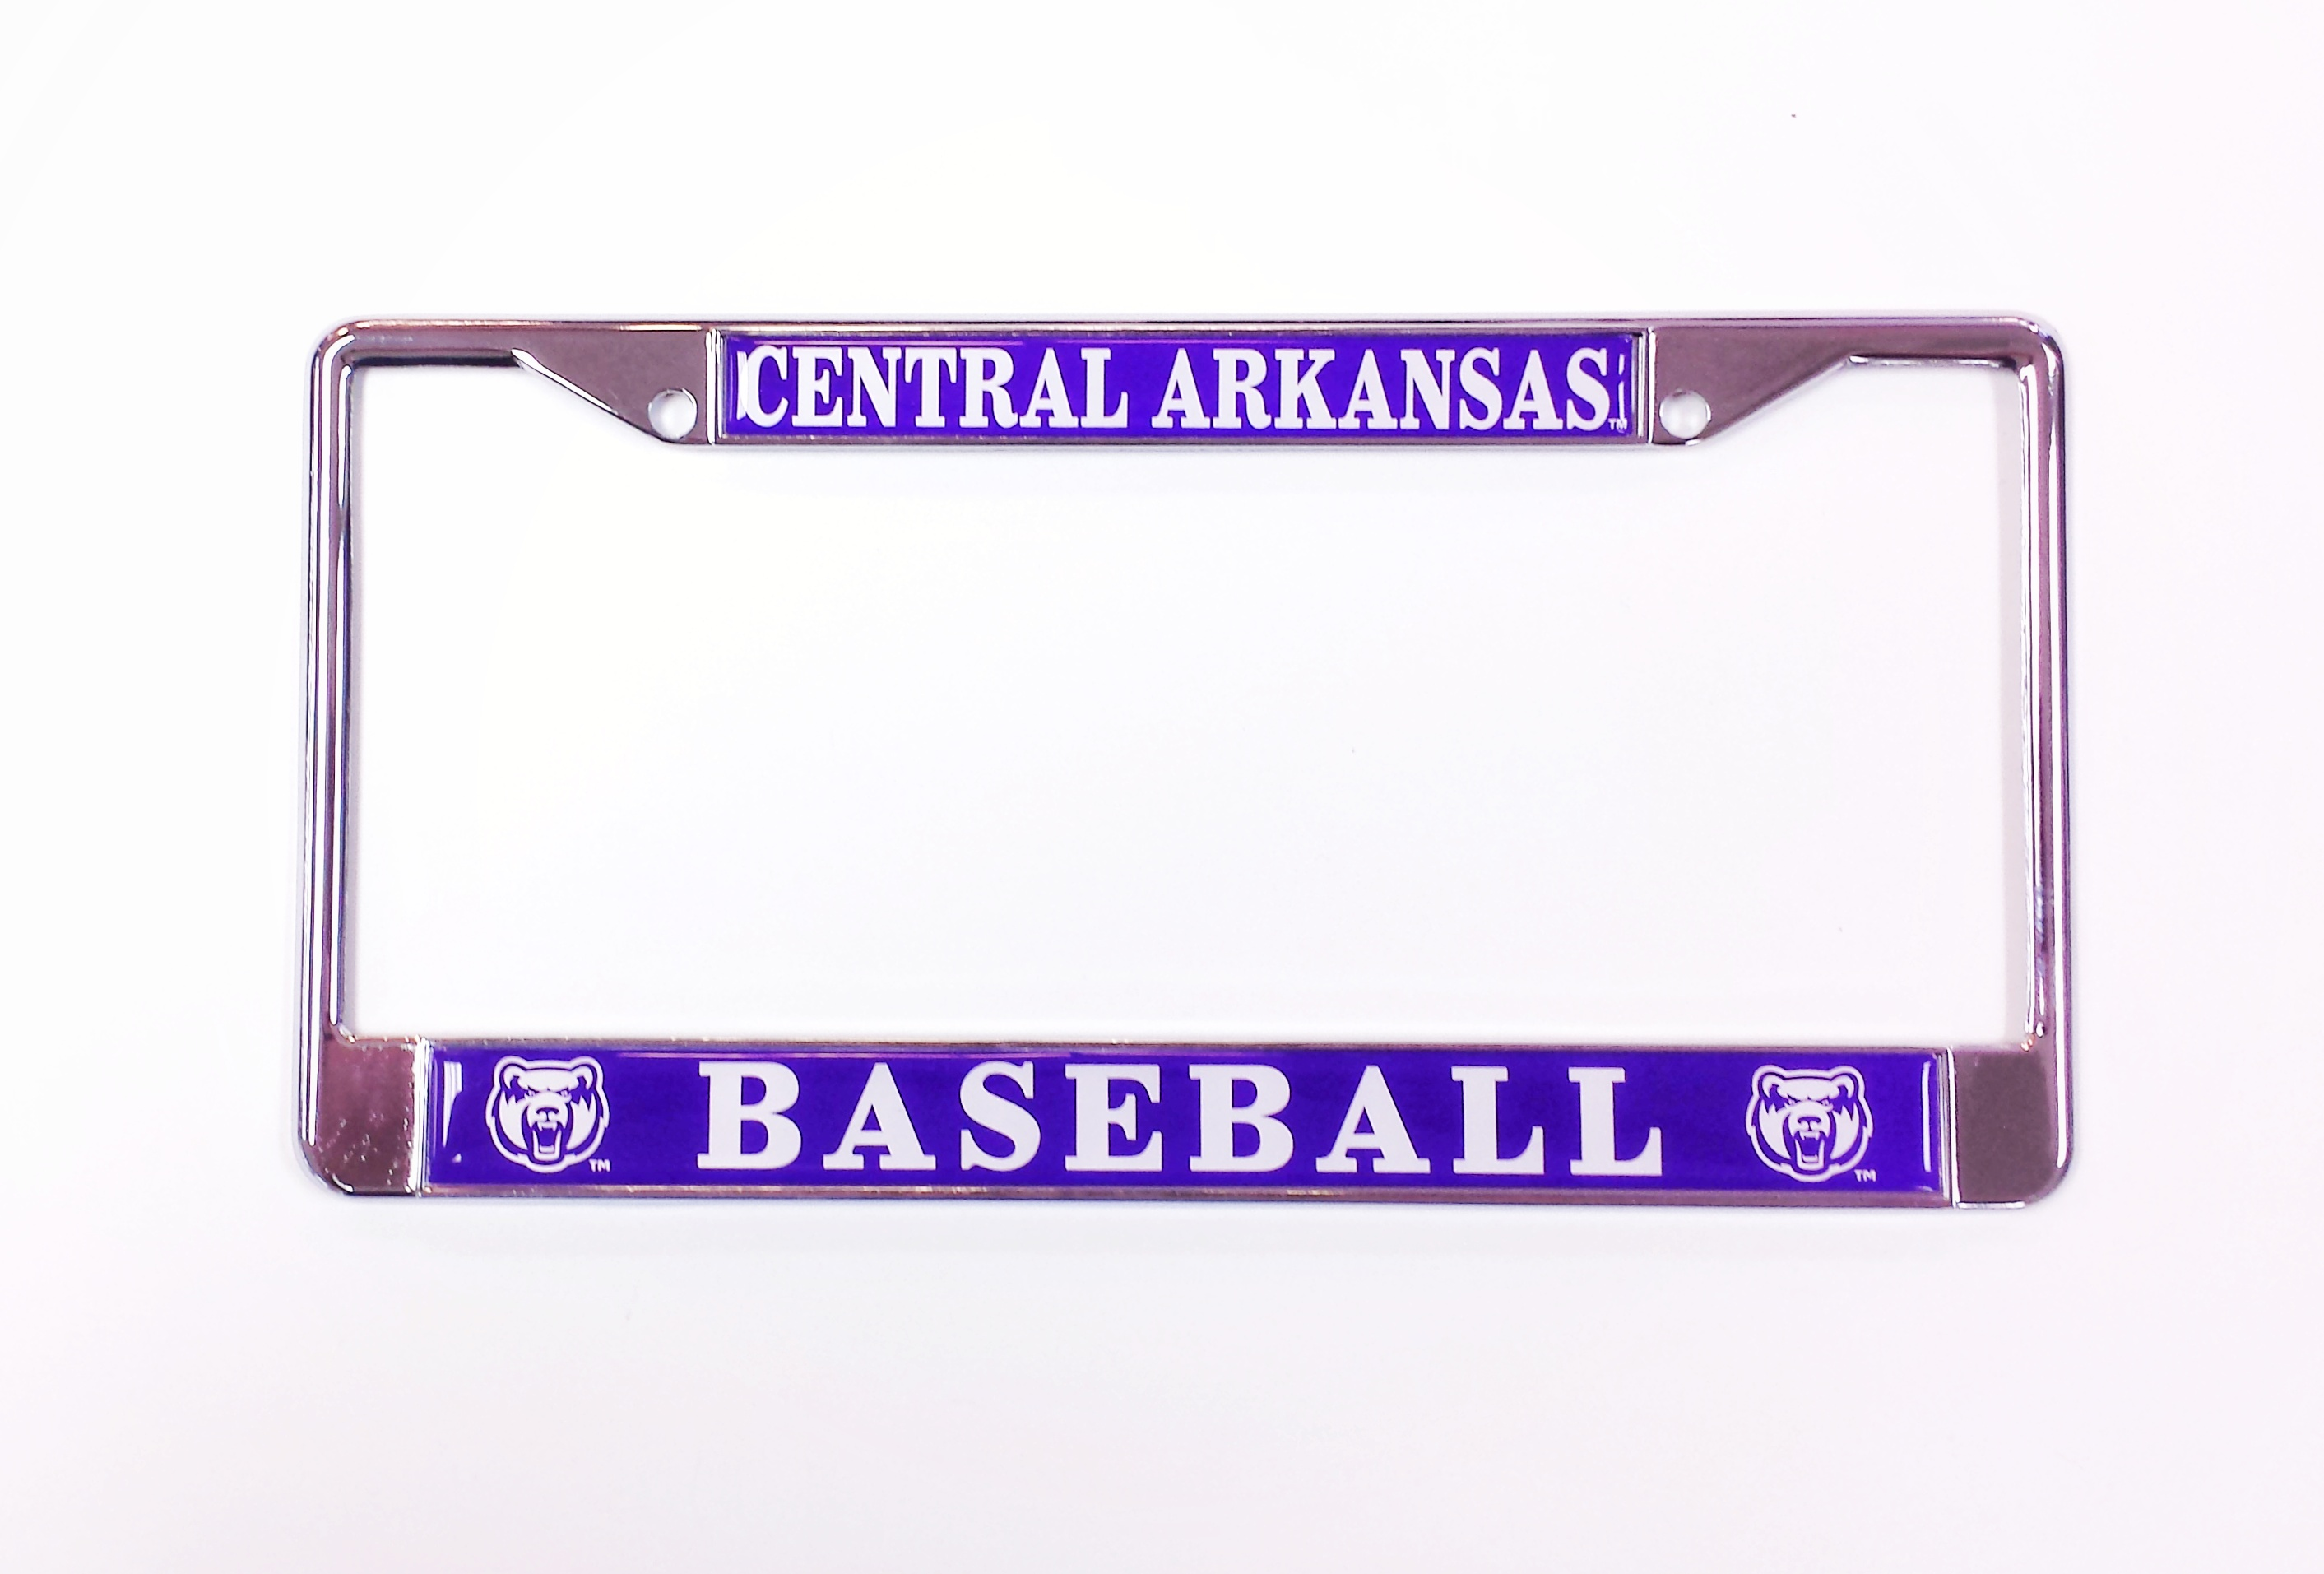 Central Arkansas Baseball License Frame